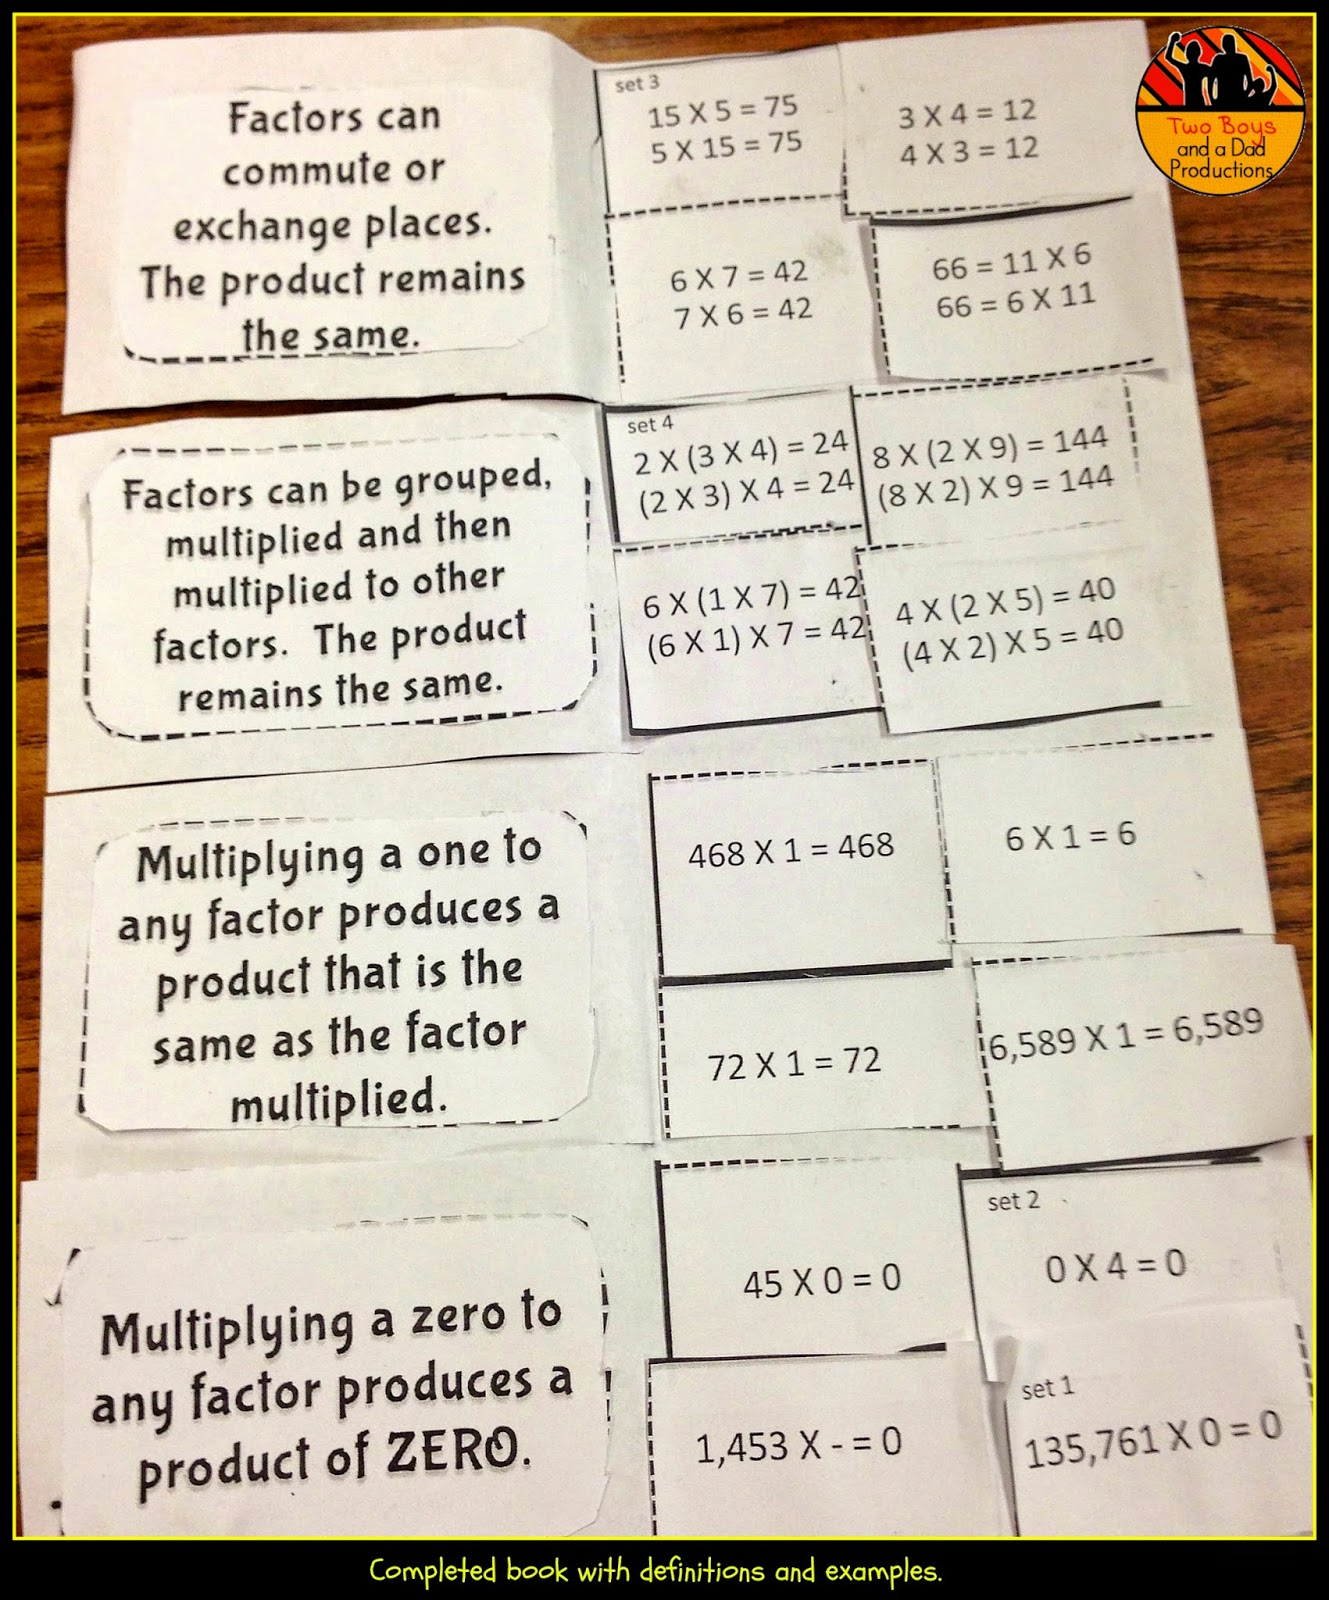 Two Boys and a Dad Productions – Associative Property of Addition Worksheets 3rd Grade